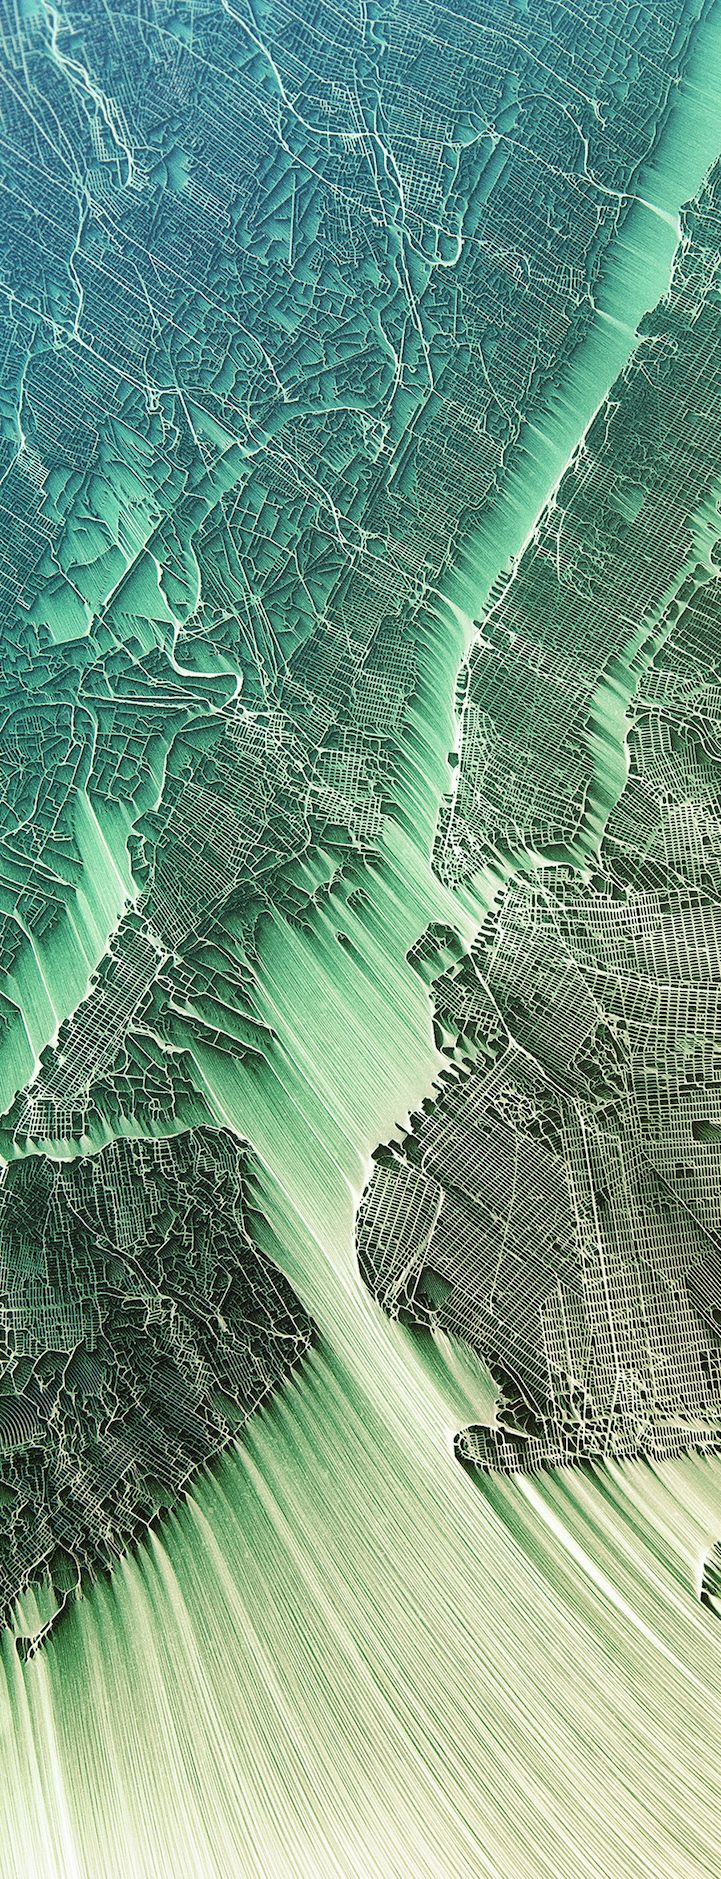 Download Map Indonesia%0A World u    s Cities Transformed into Vibrant  Flowing Maps of Eroded Terrain